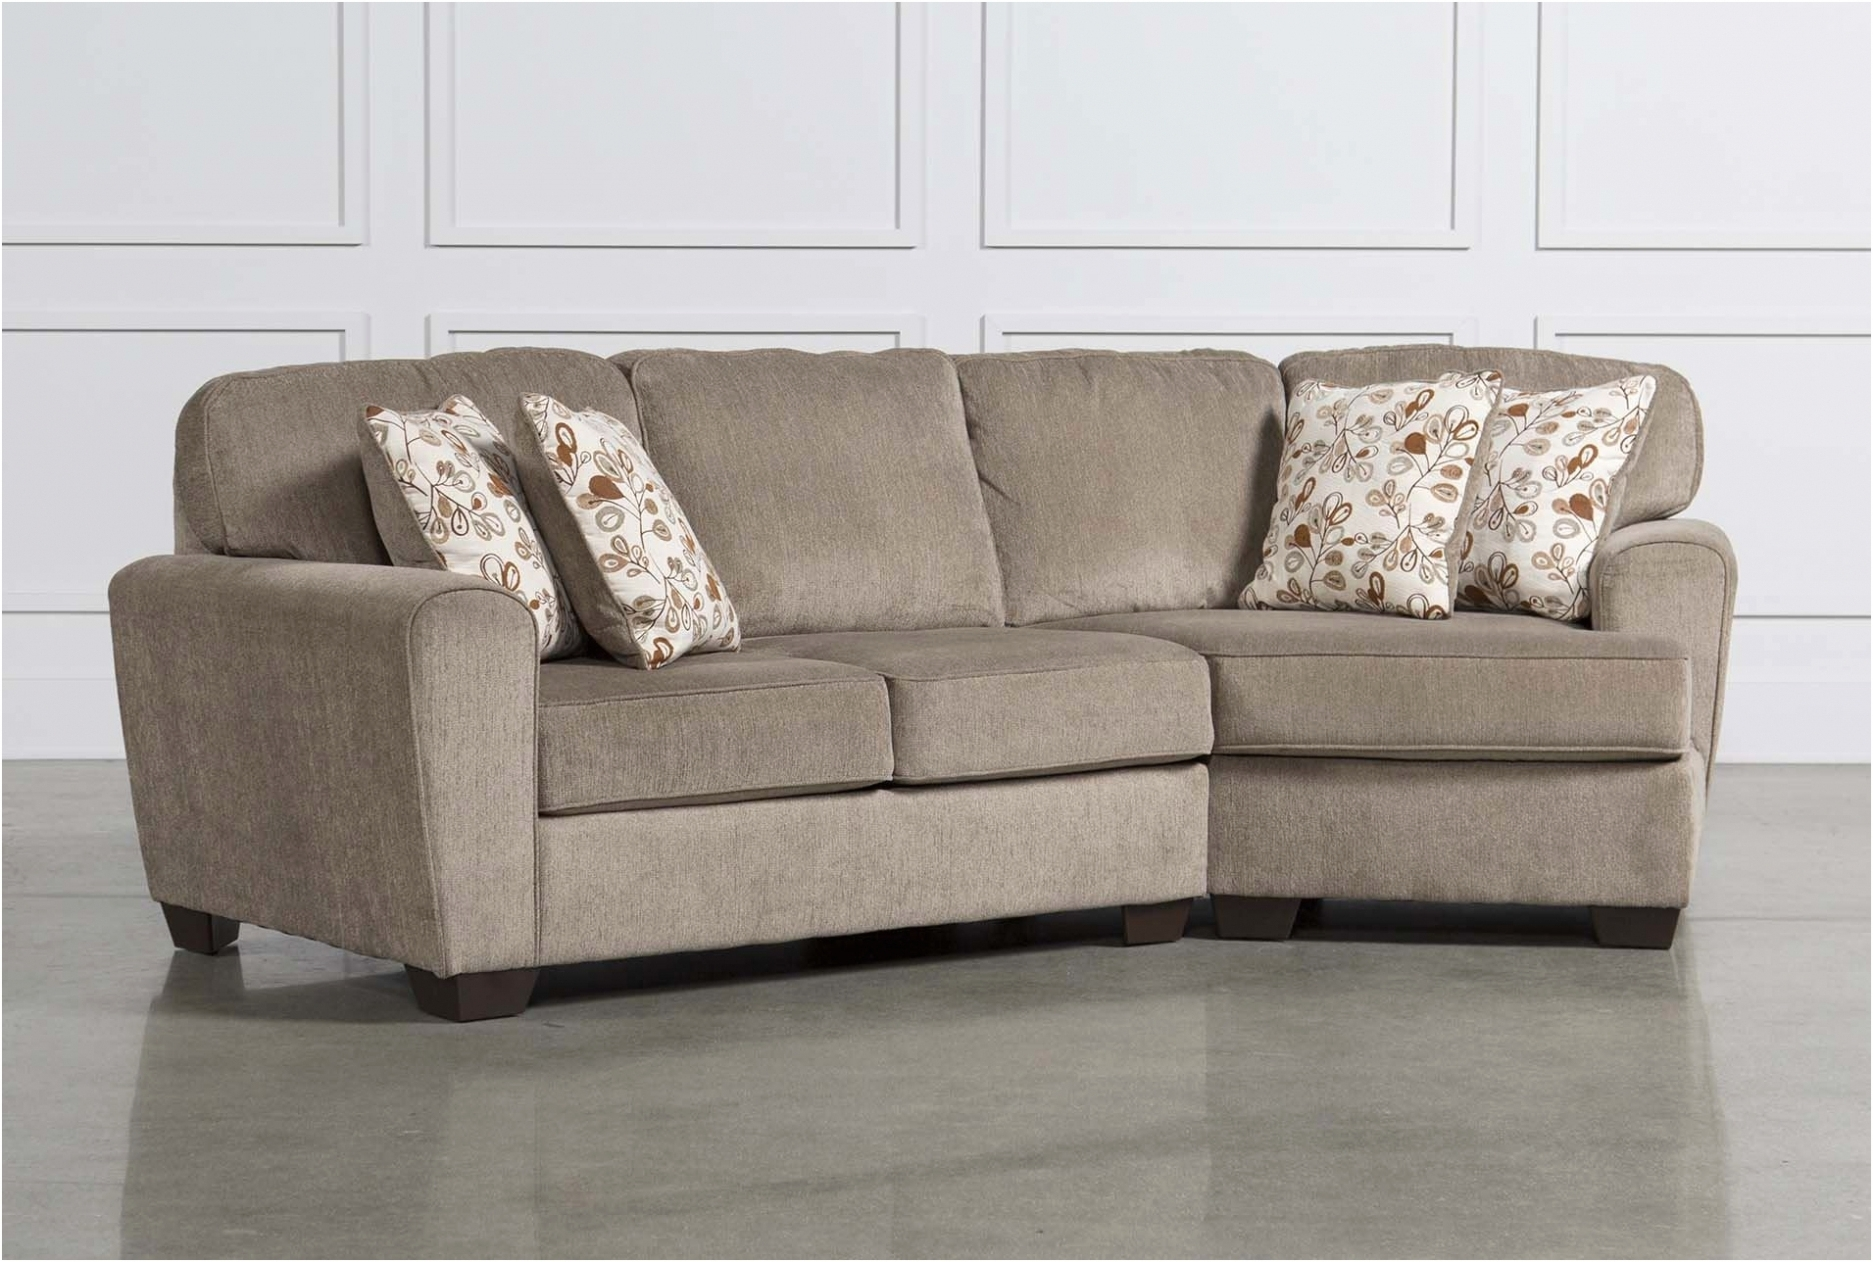 Favorite Furniture: Fresh Sectional Sofa With Cuddler Chaise New – Sofa For Living Spaces Sectional Sofas (View 3 of 20)